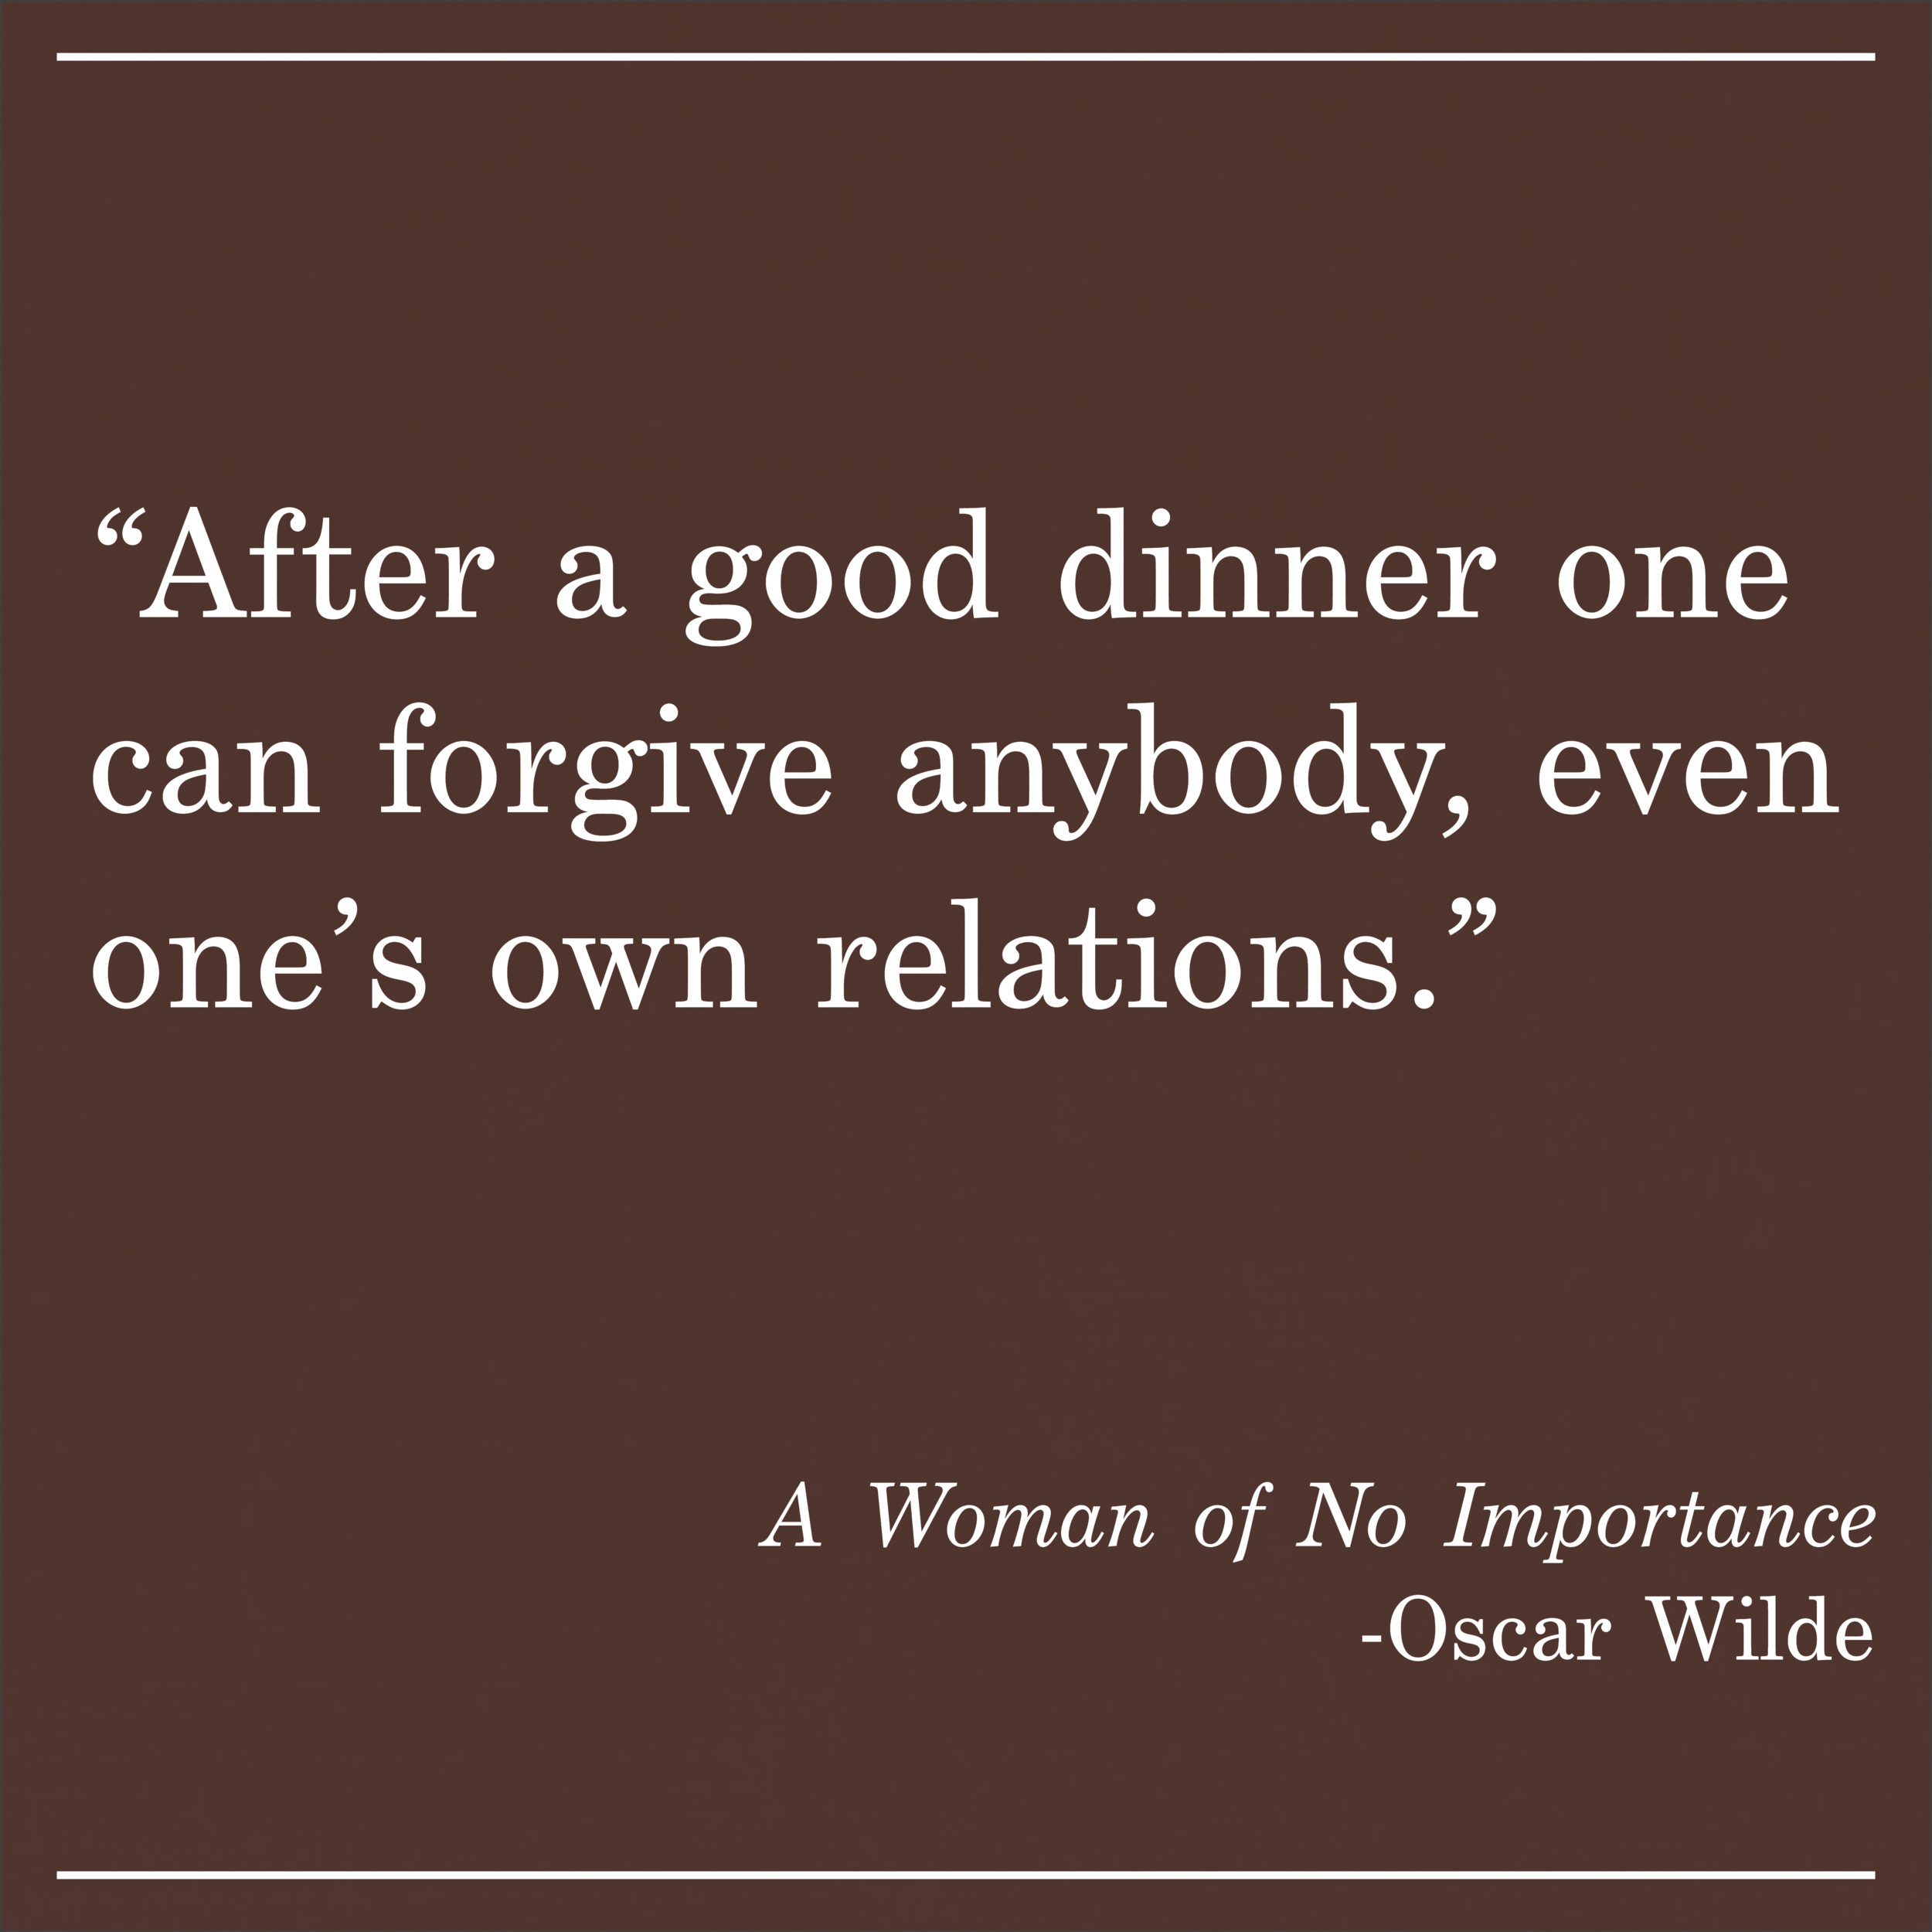 Daily Quote A Woman of No Importance by Oscar Wilde